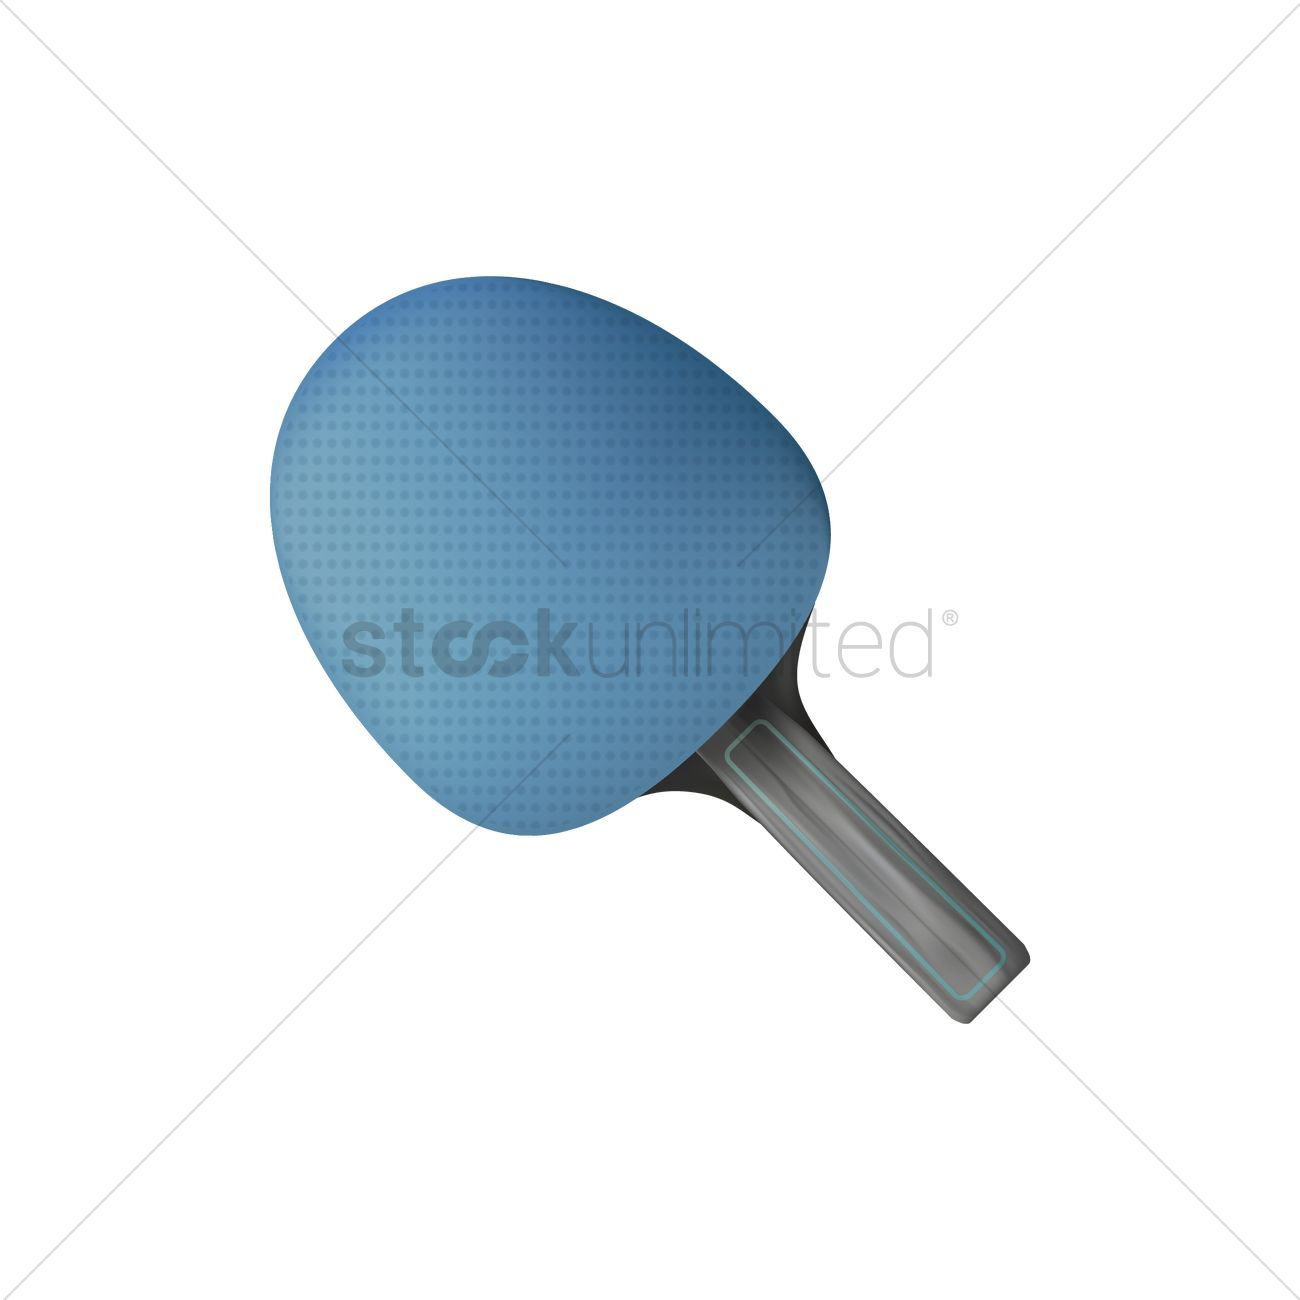 You Don T Have To Be A Designer To Get Awesome Visuals Frame Template Iron Man Symbol Table Tennis Racket